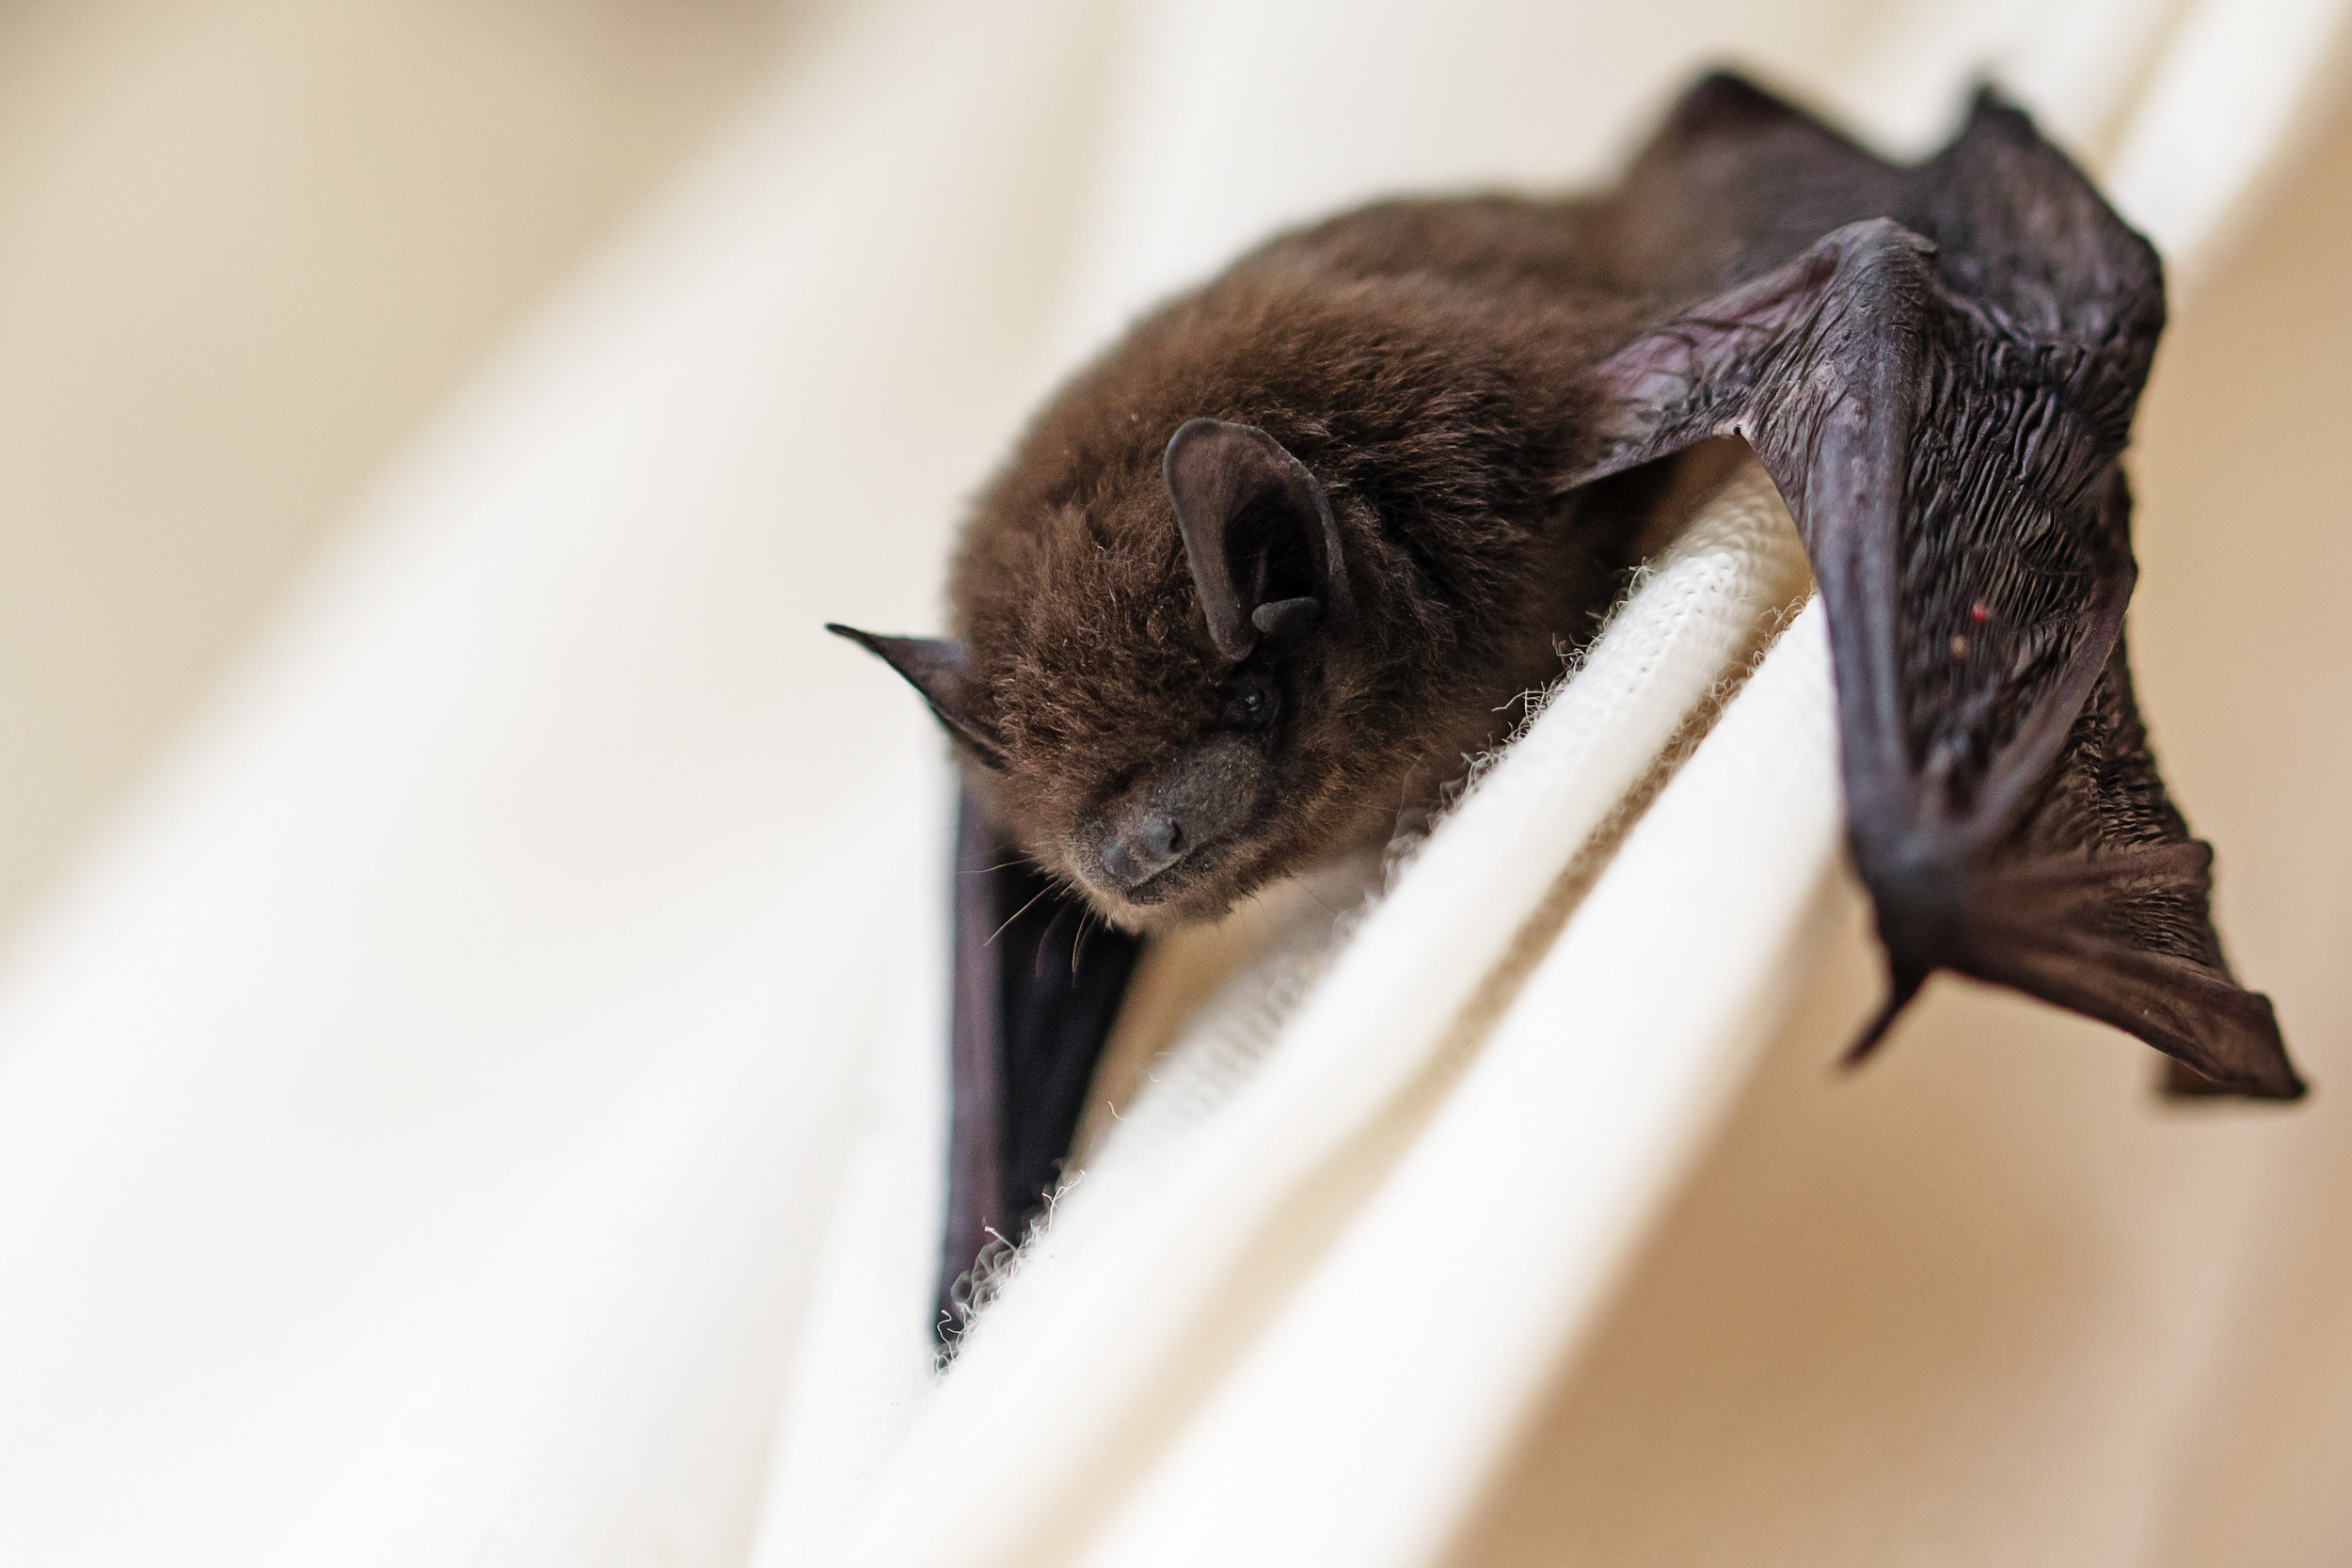 bat_on_curtain.jpg